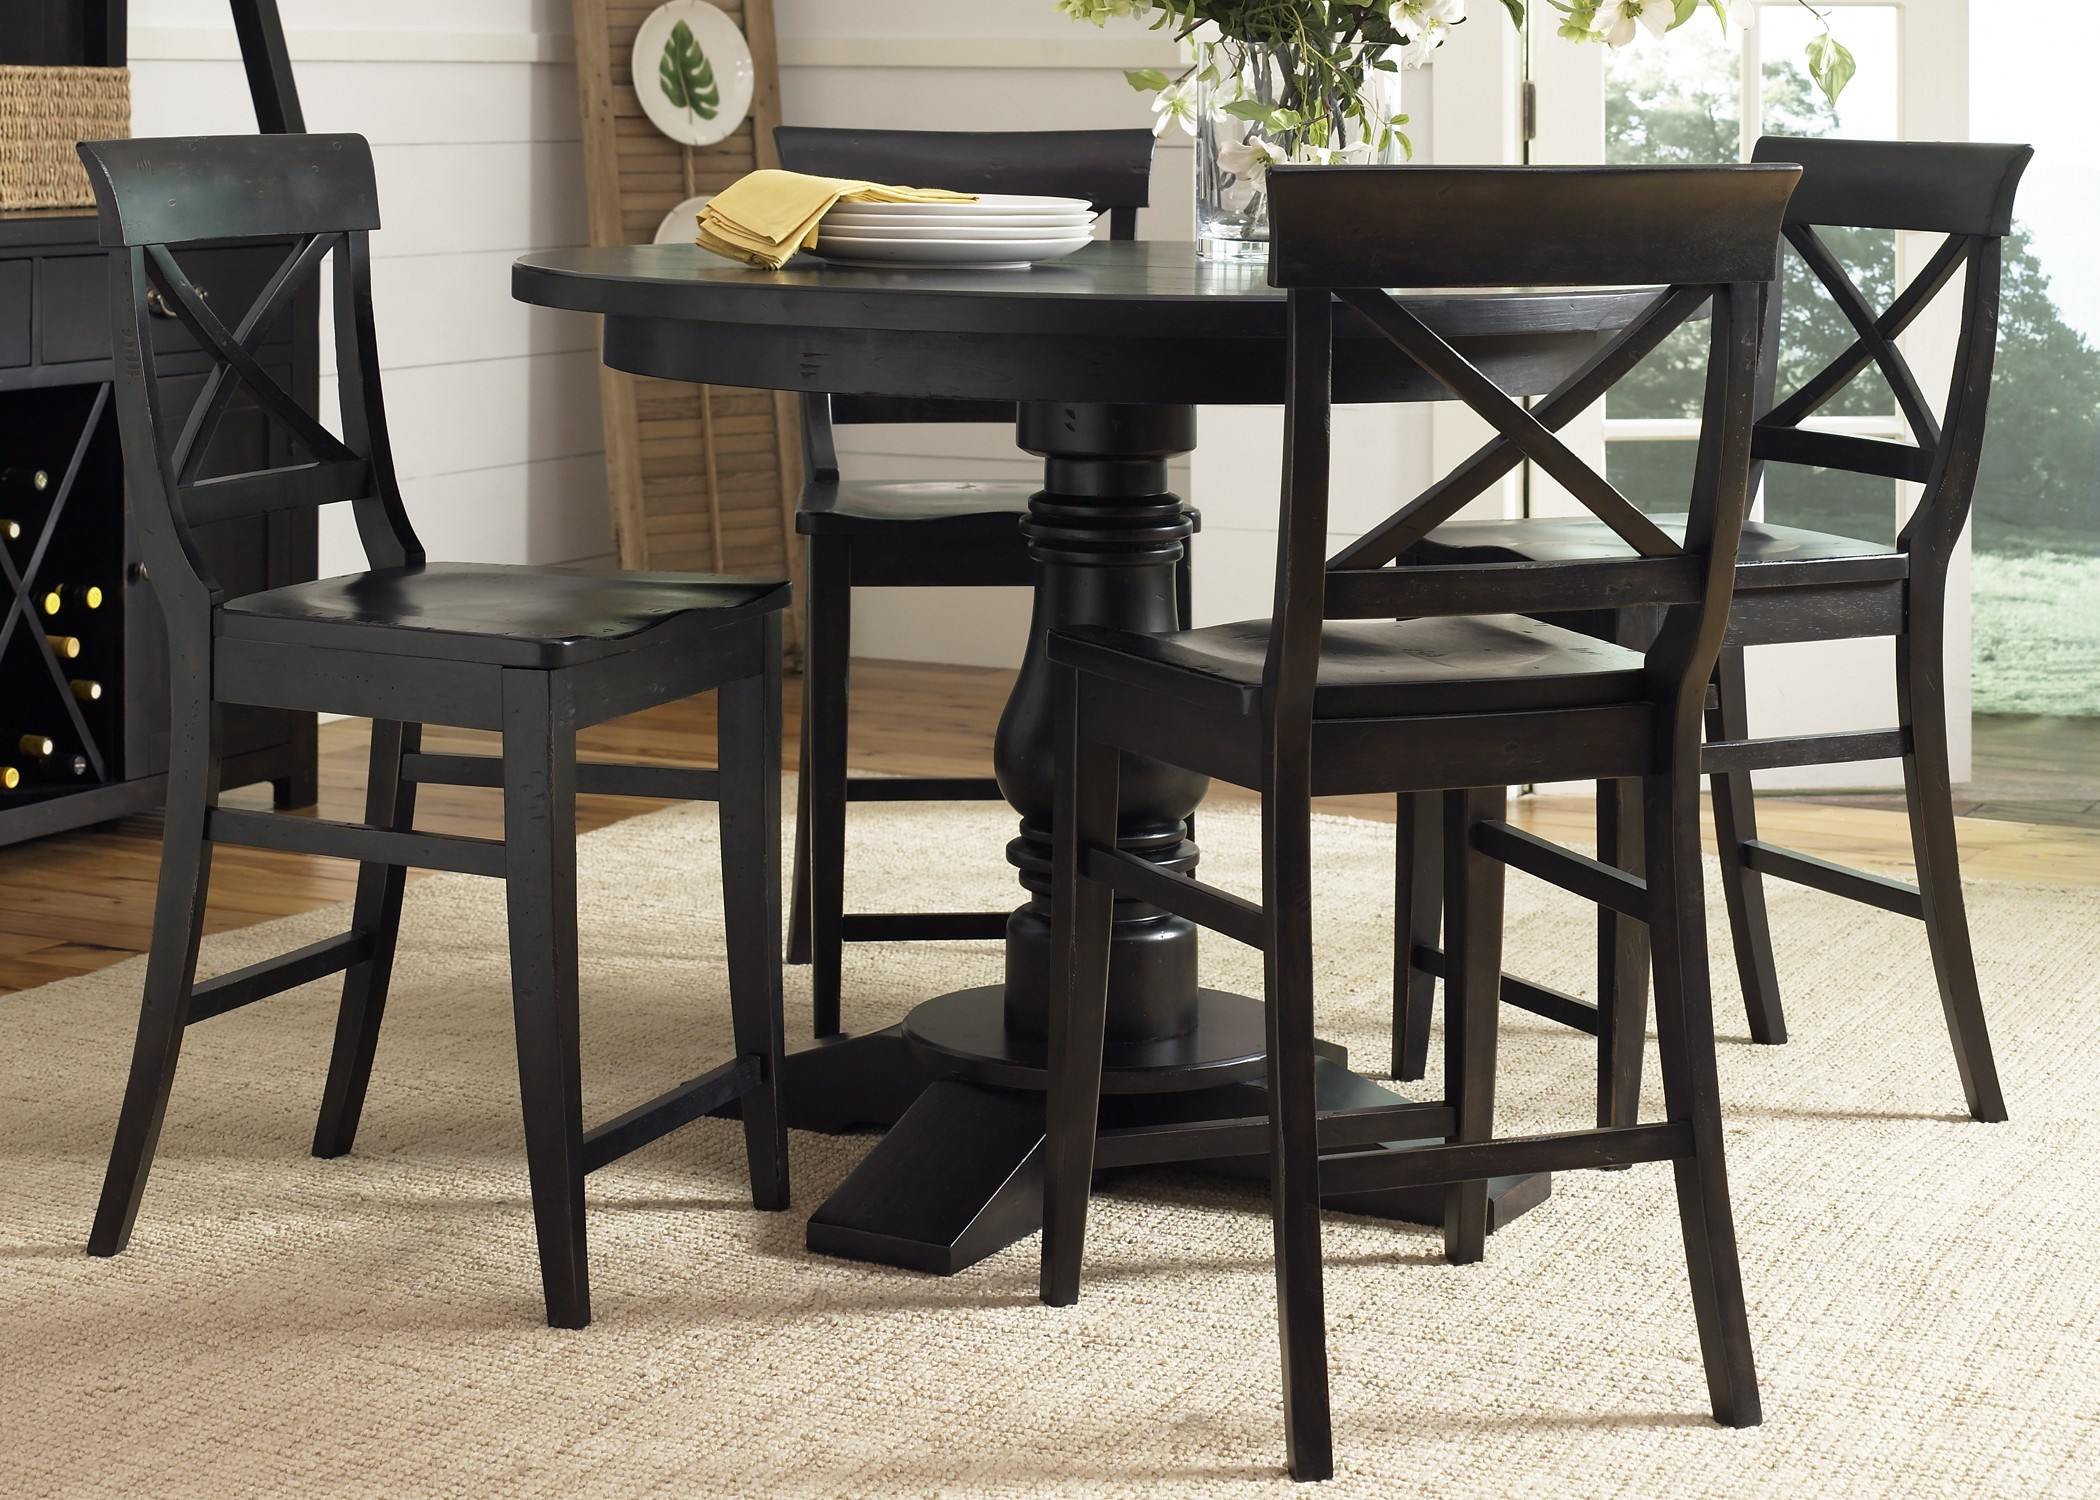 Countertop Height Round Table : Sundance Lake Round Pedestal Counter Height Table - Liberty Furniture